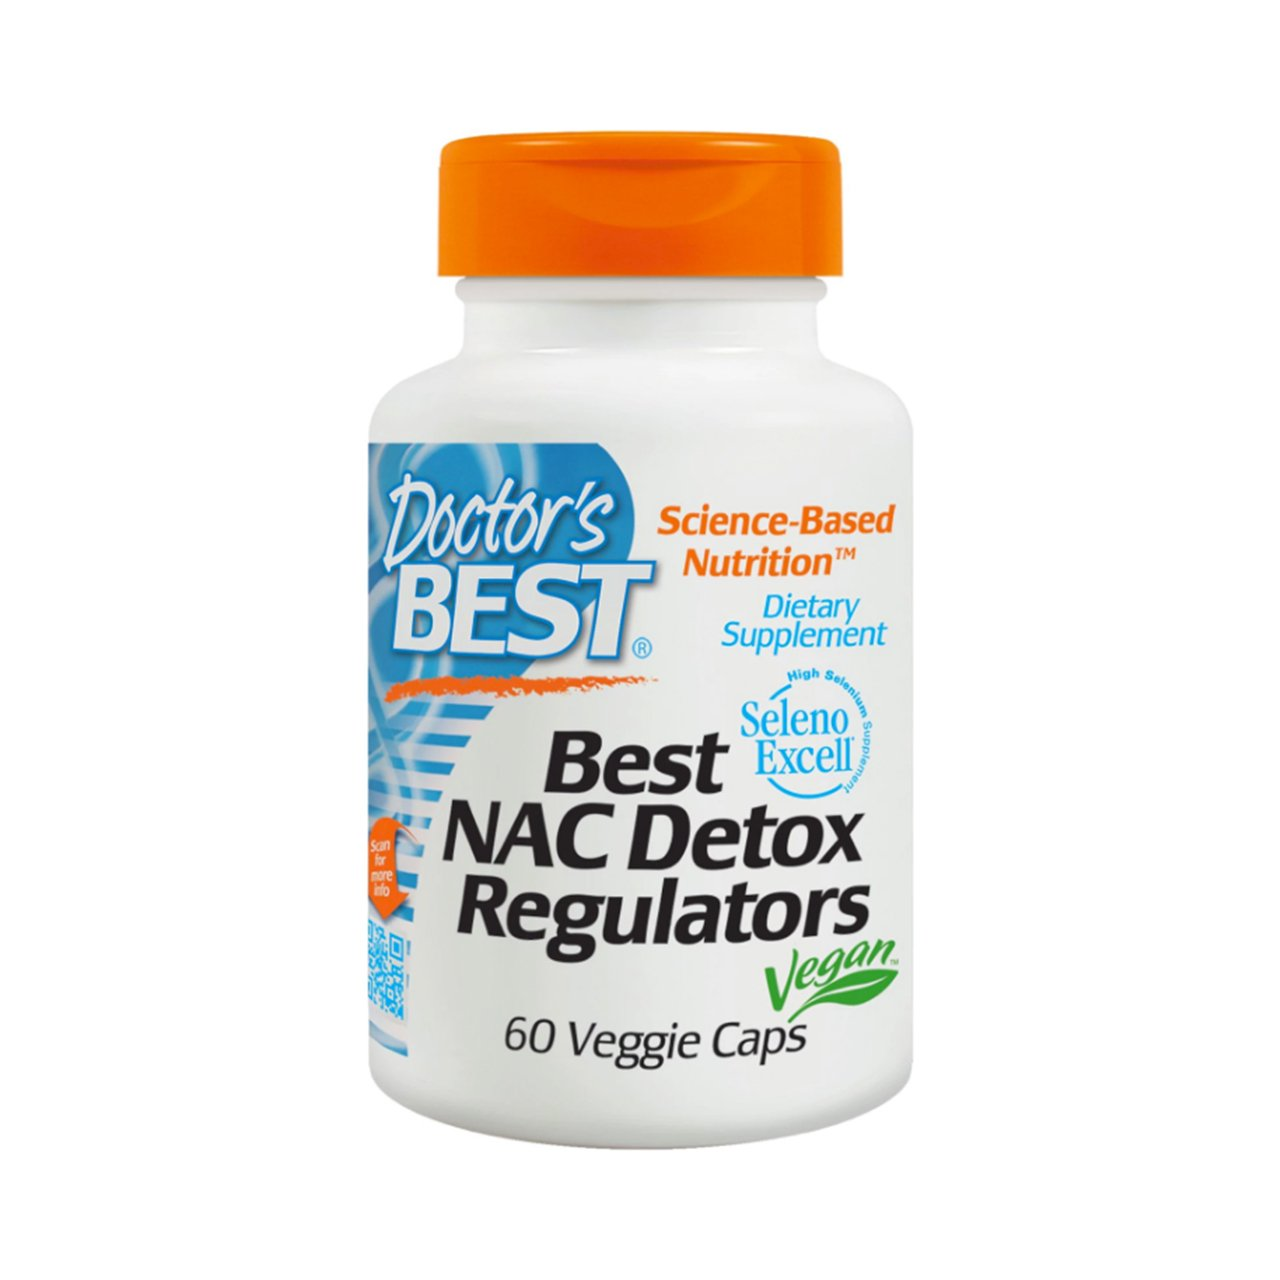 NAC DETOX REGULATORS 600 MG (60 VEGGIE CAPS)